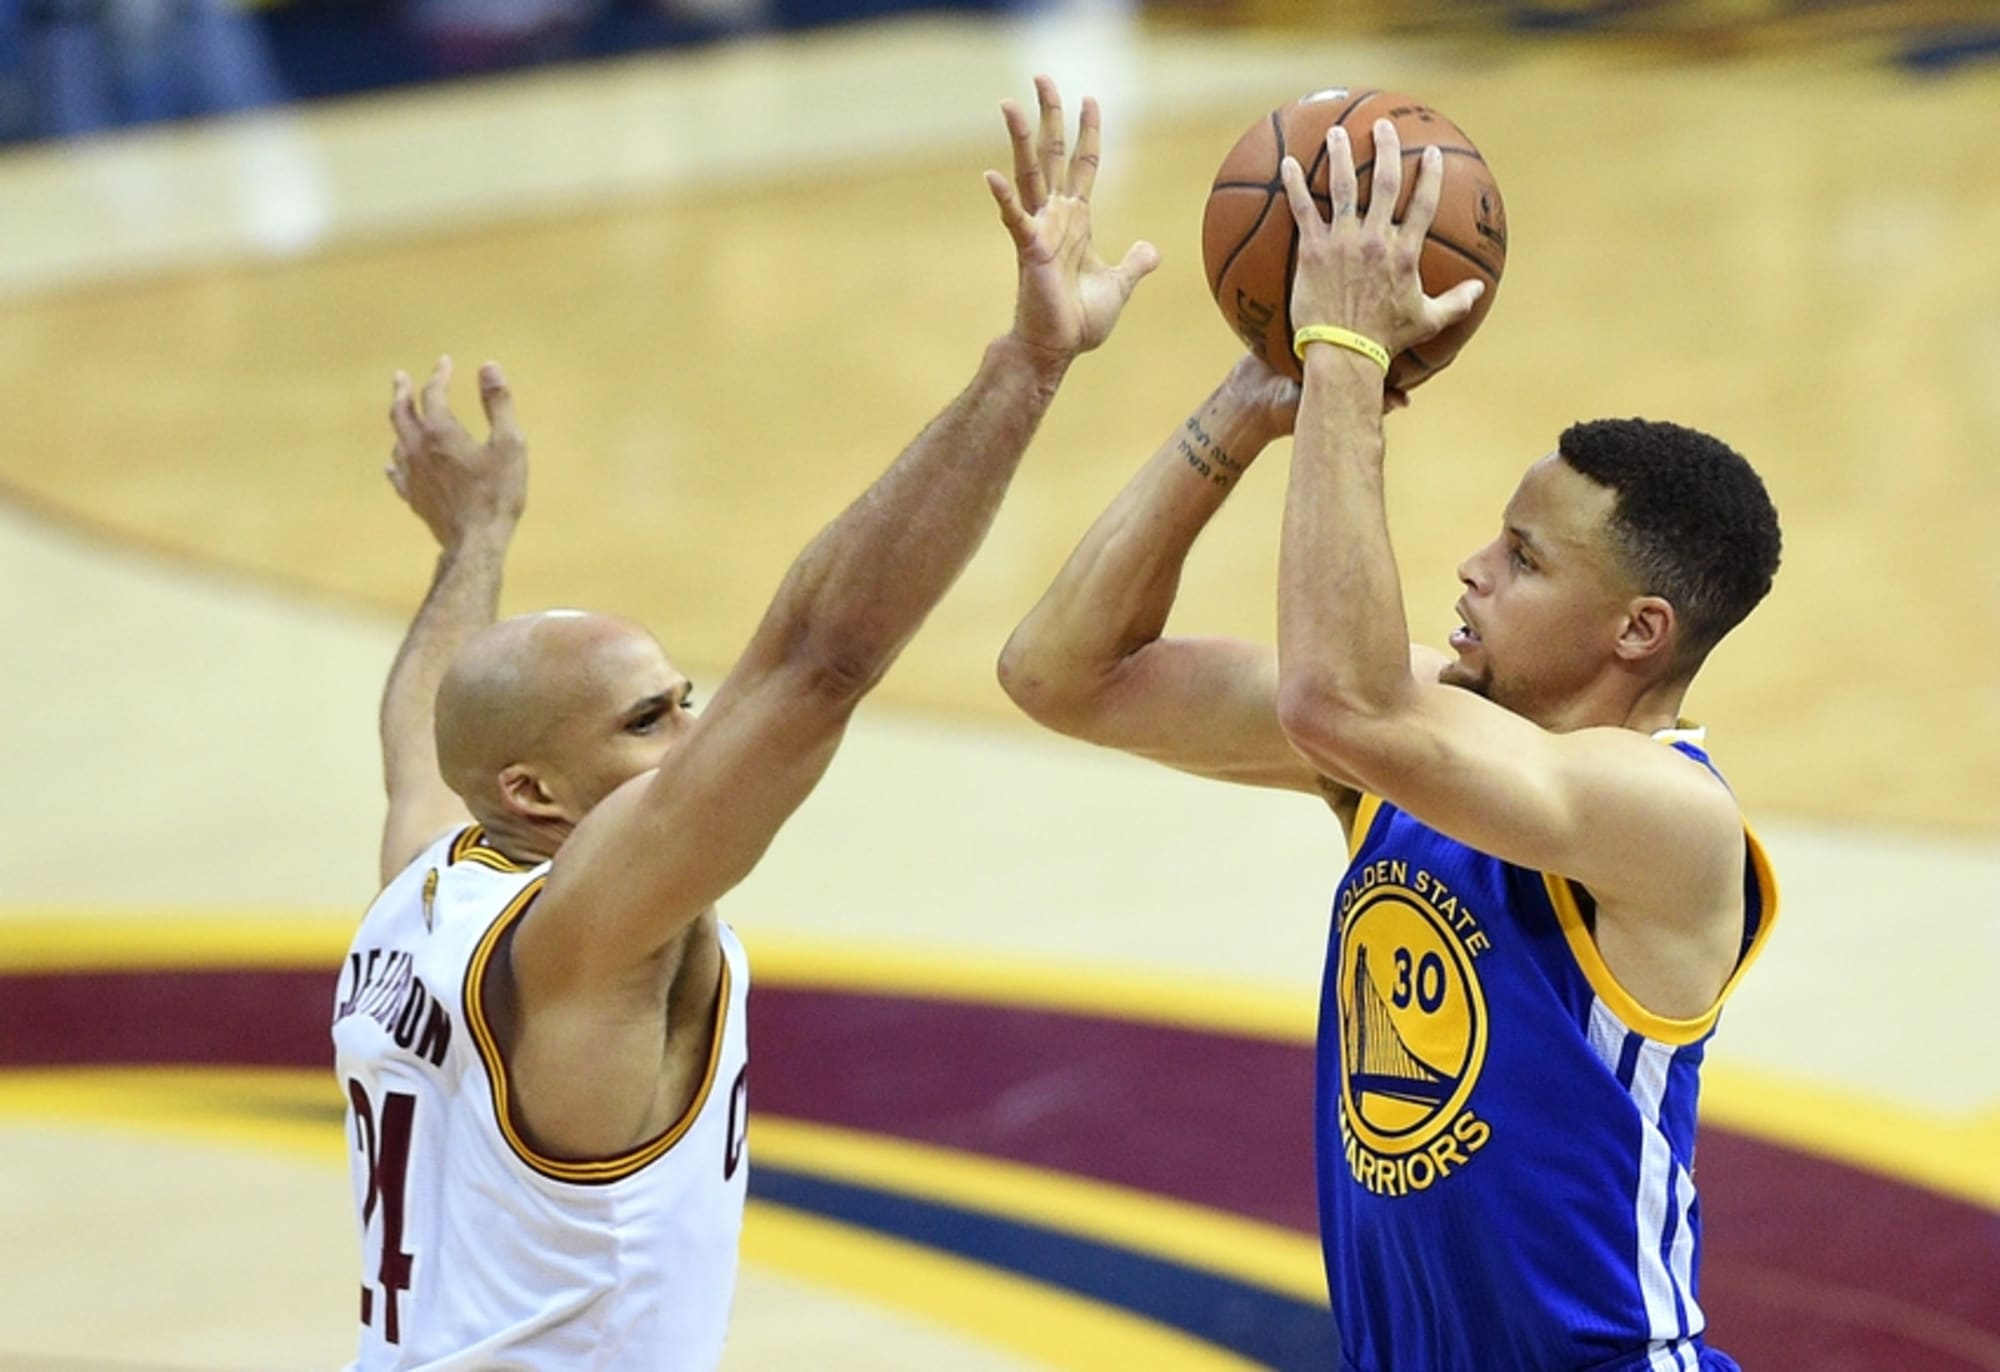 Steph Curry Breaks The Nba Finals Record For 3 Pointers